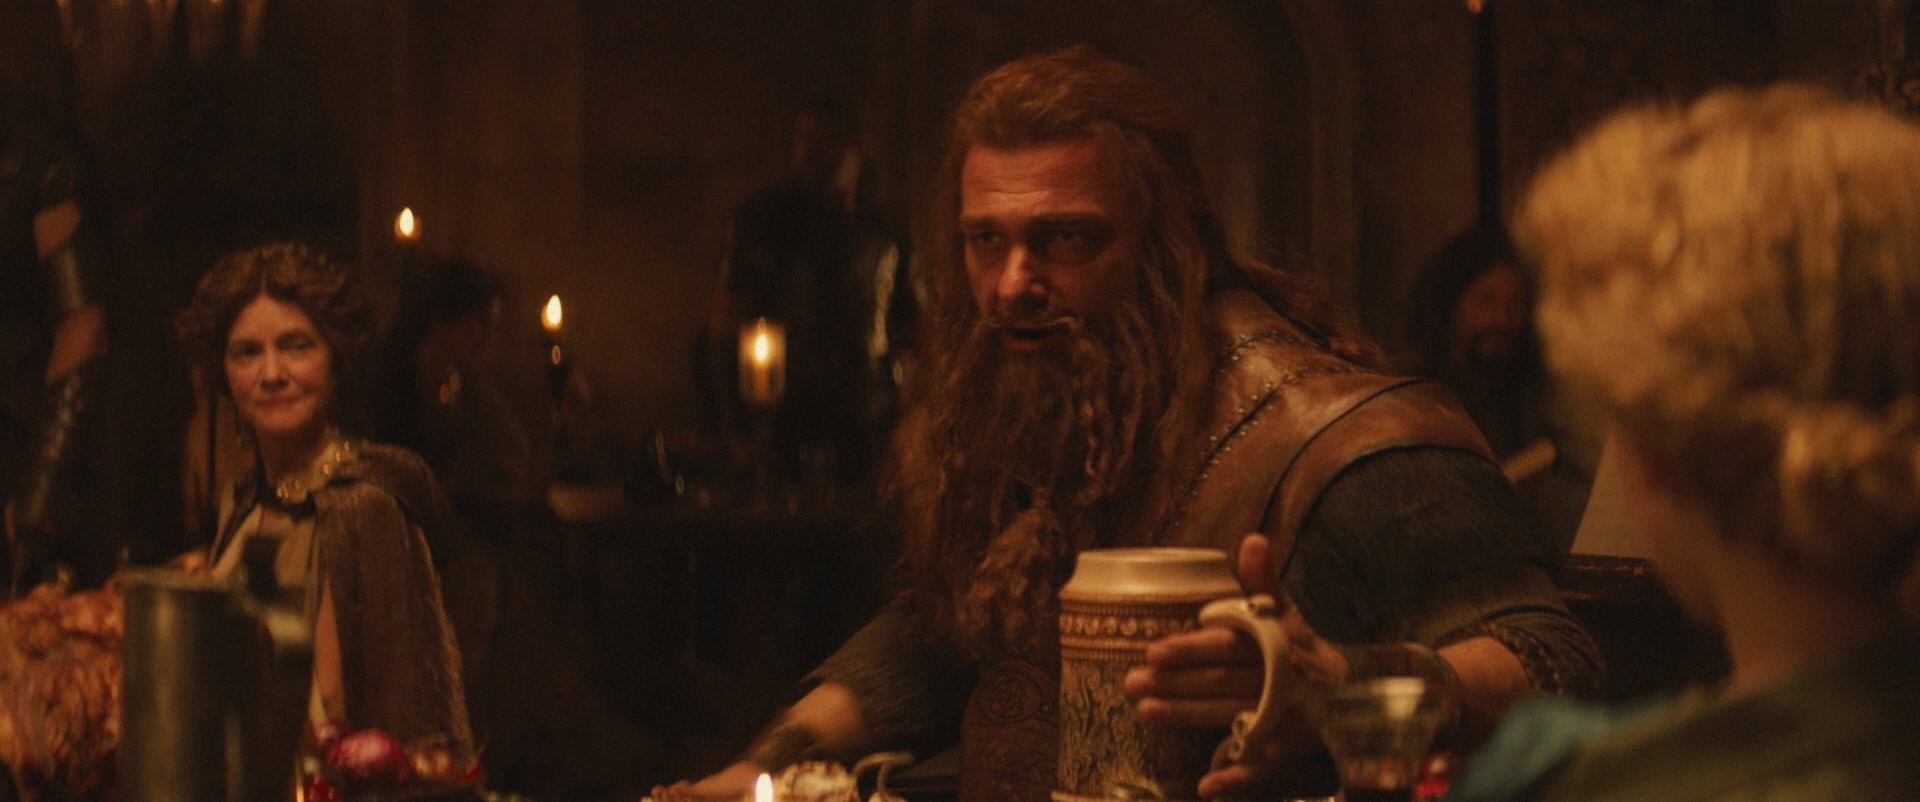 http://vignette2.wikia.nocookie.net/marvelcinematicuniverse/images/8/87/Volstaggpic.png/revision/latest?cb=20140310051445